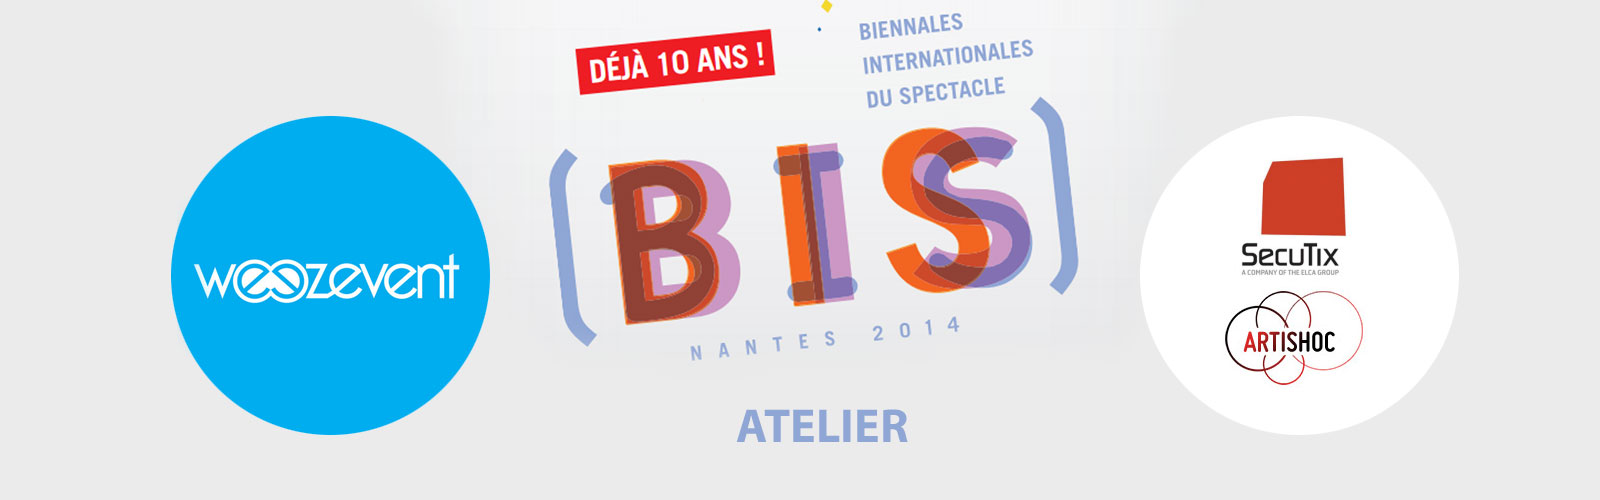 ateliers-bis2014